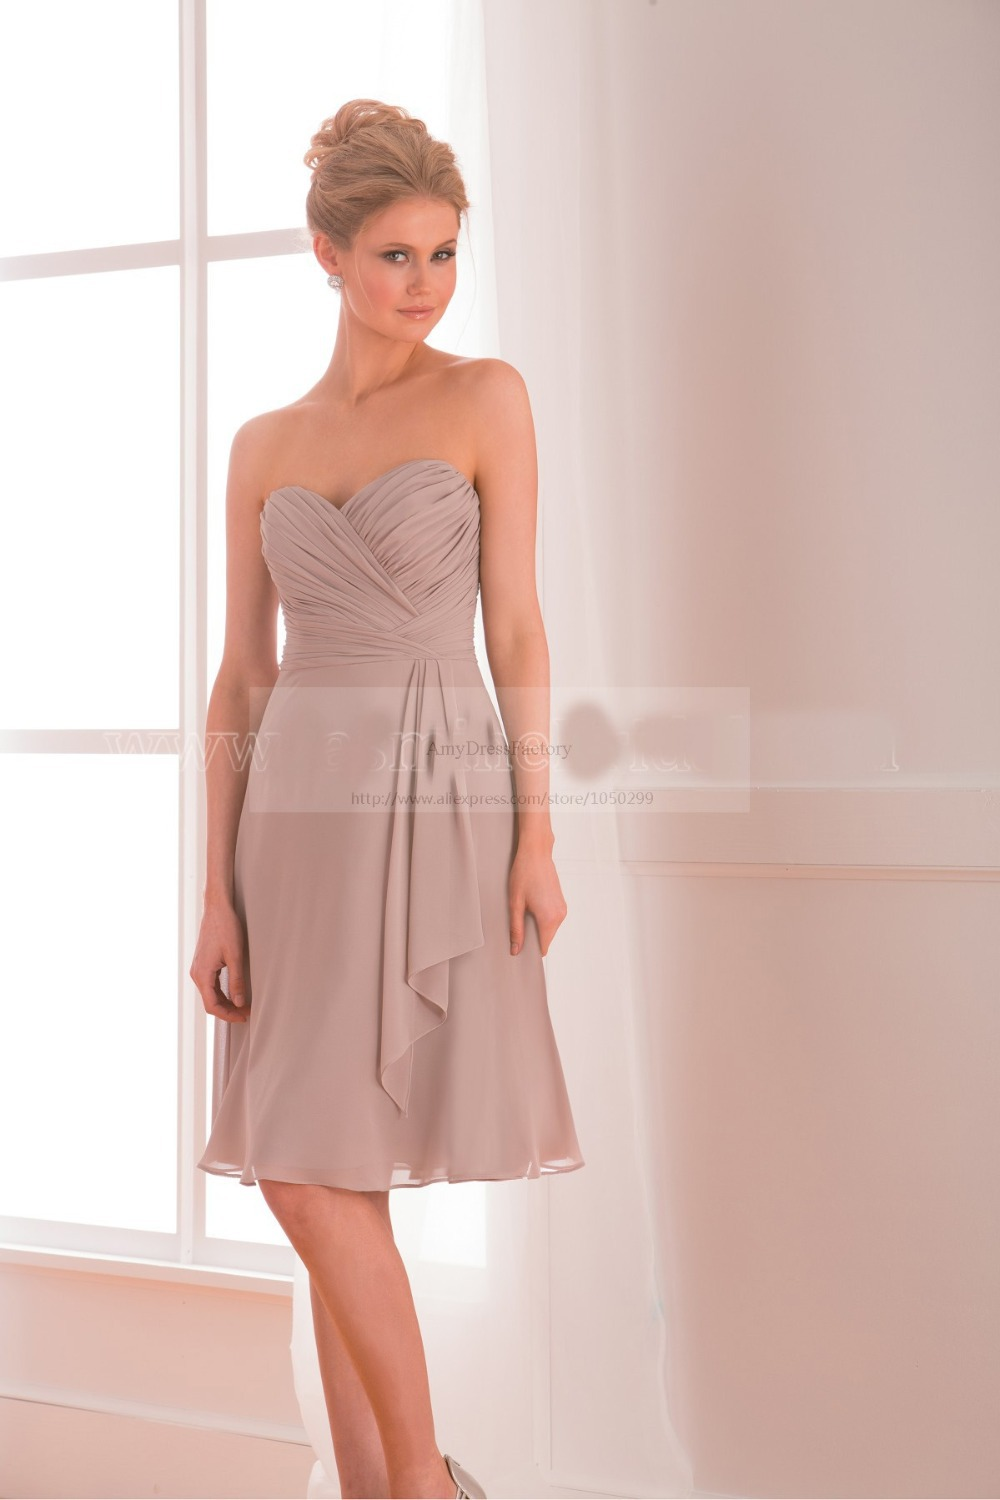 Best selling cheap chiffon bridesmaid dresses under 100 taupe best selling cheap chiffon bridesmaid dresses under 100 taupe women fashion short brides maid dress backless in bridesmaid dresses from weddings events on ombrellifo Gallery